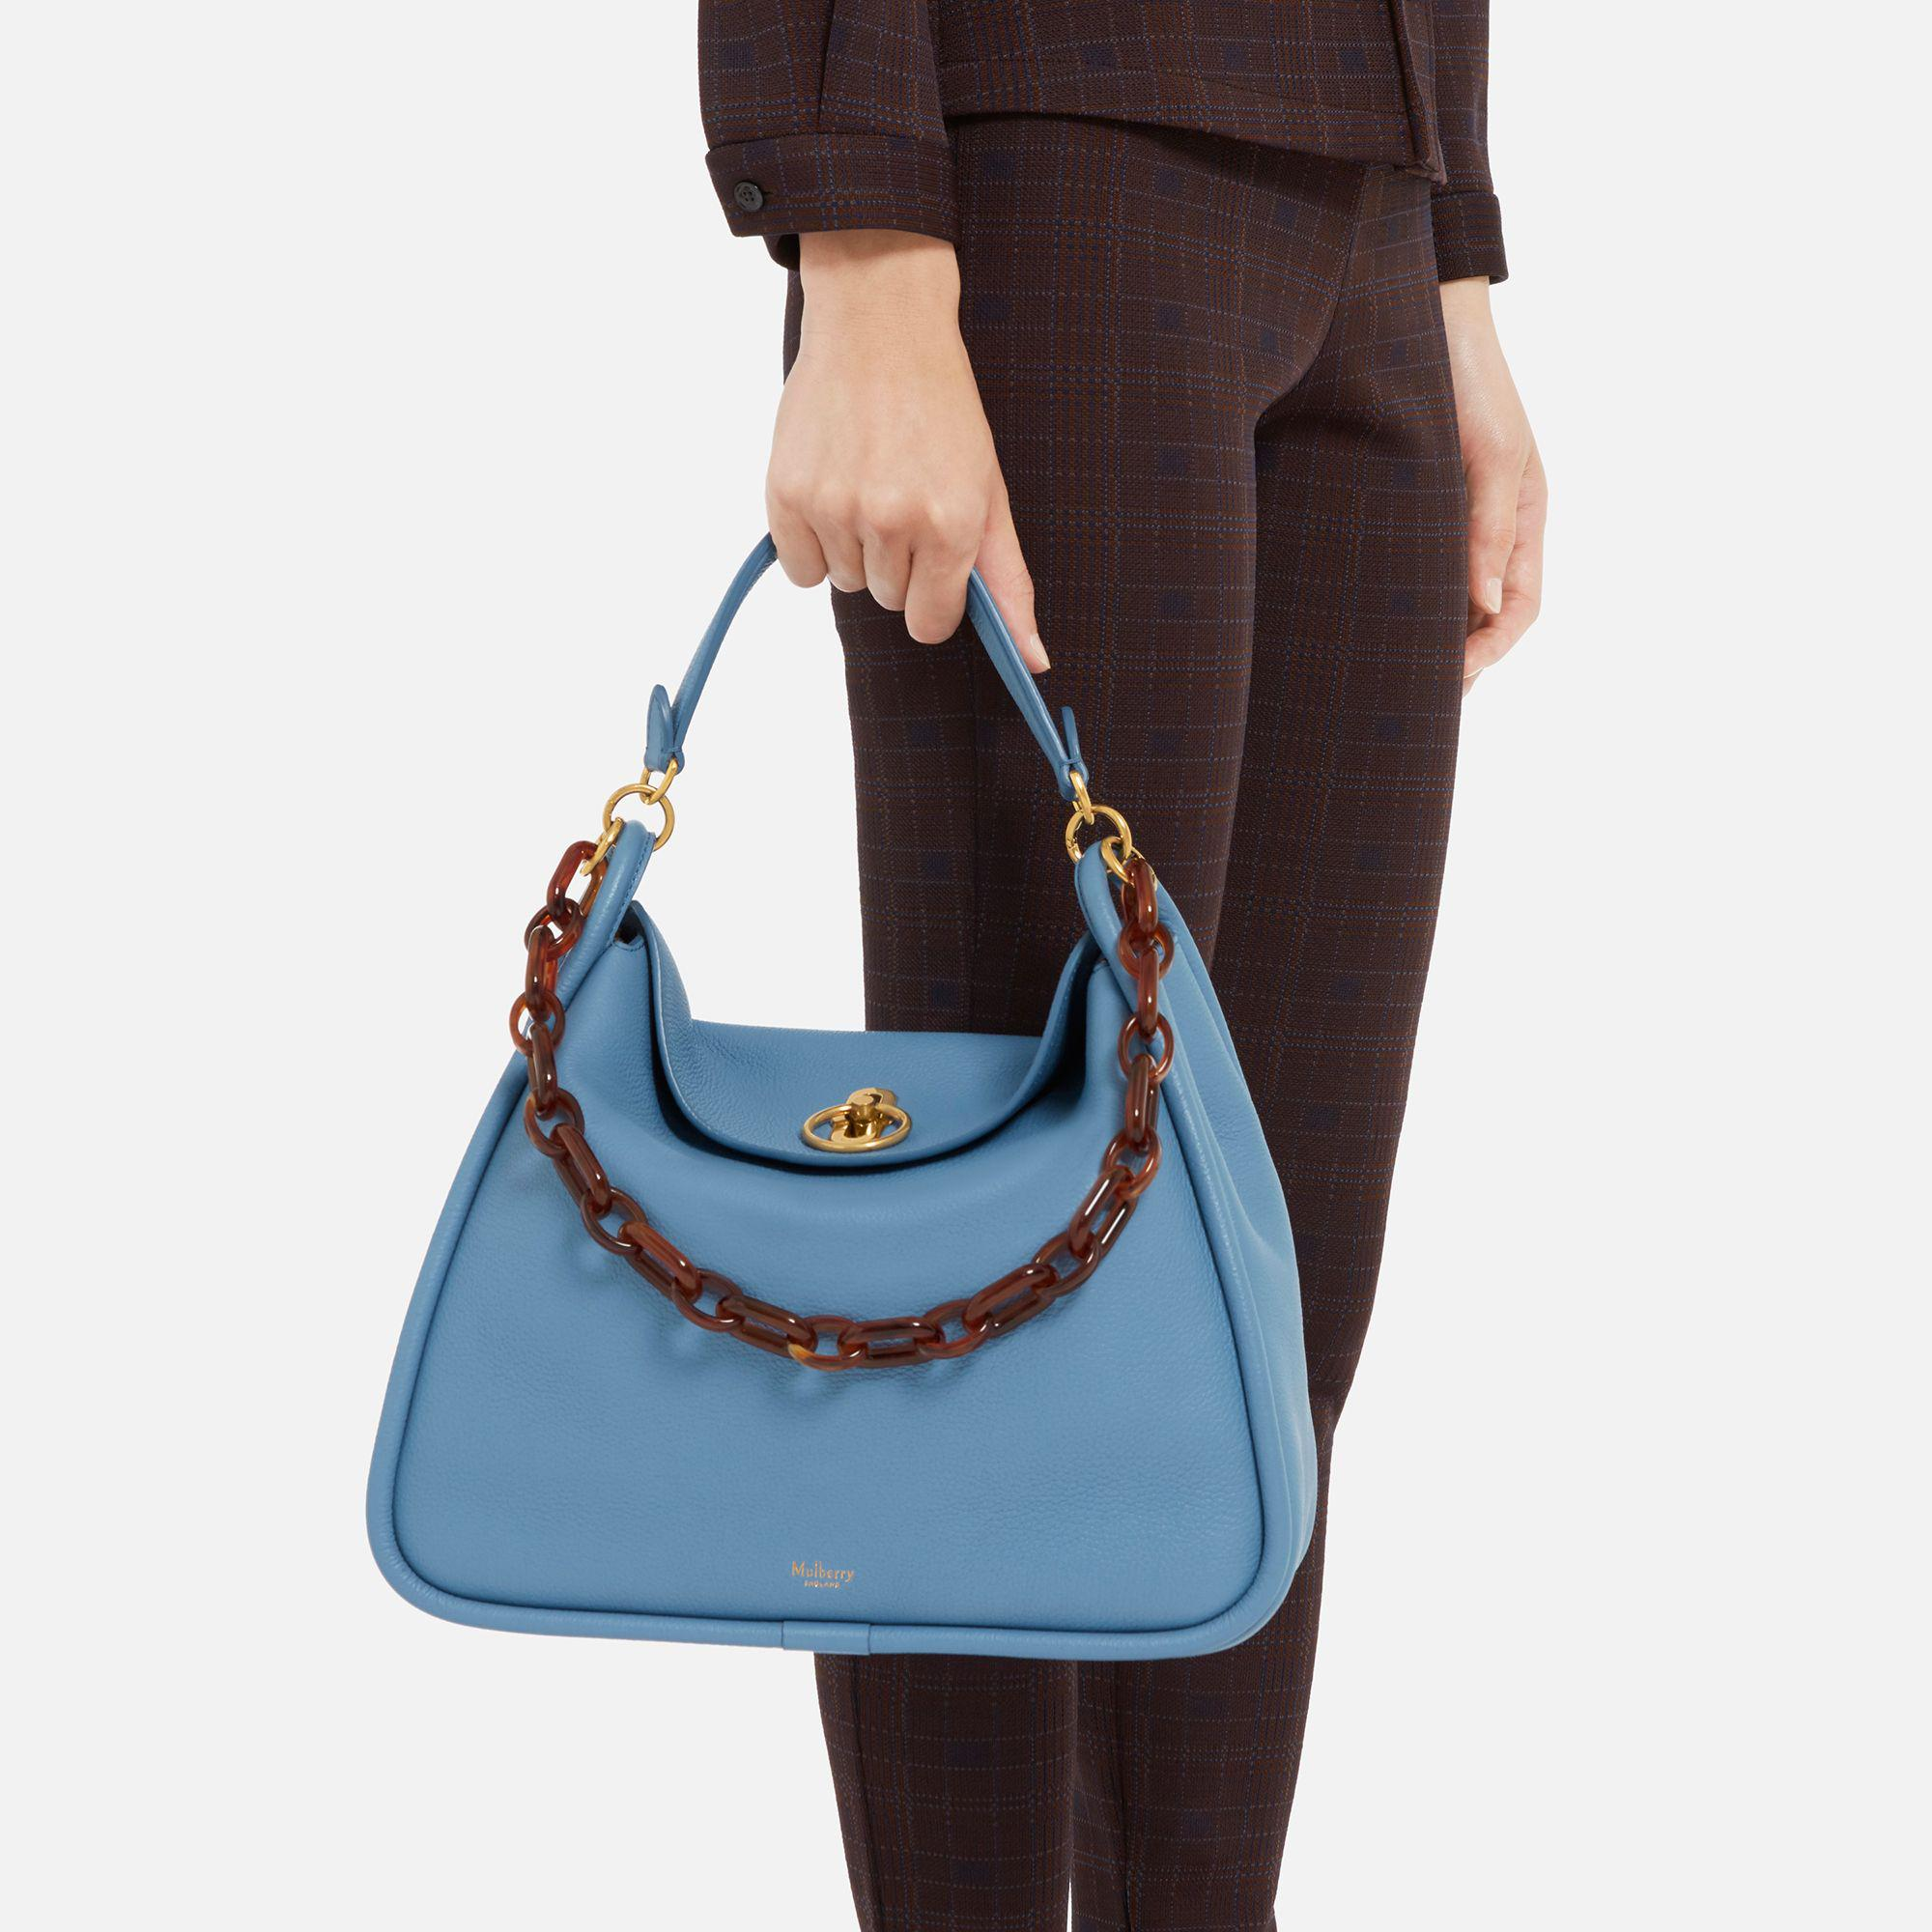 Mulberry Leighton in Blue - Lyst 490a3cf2b2b8f